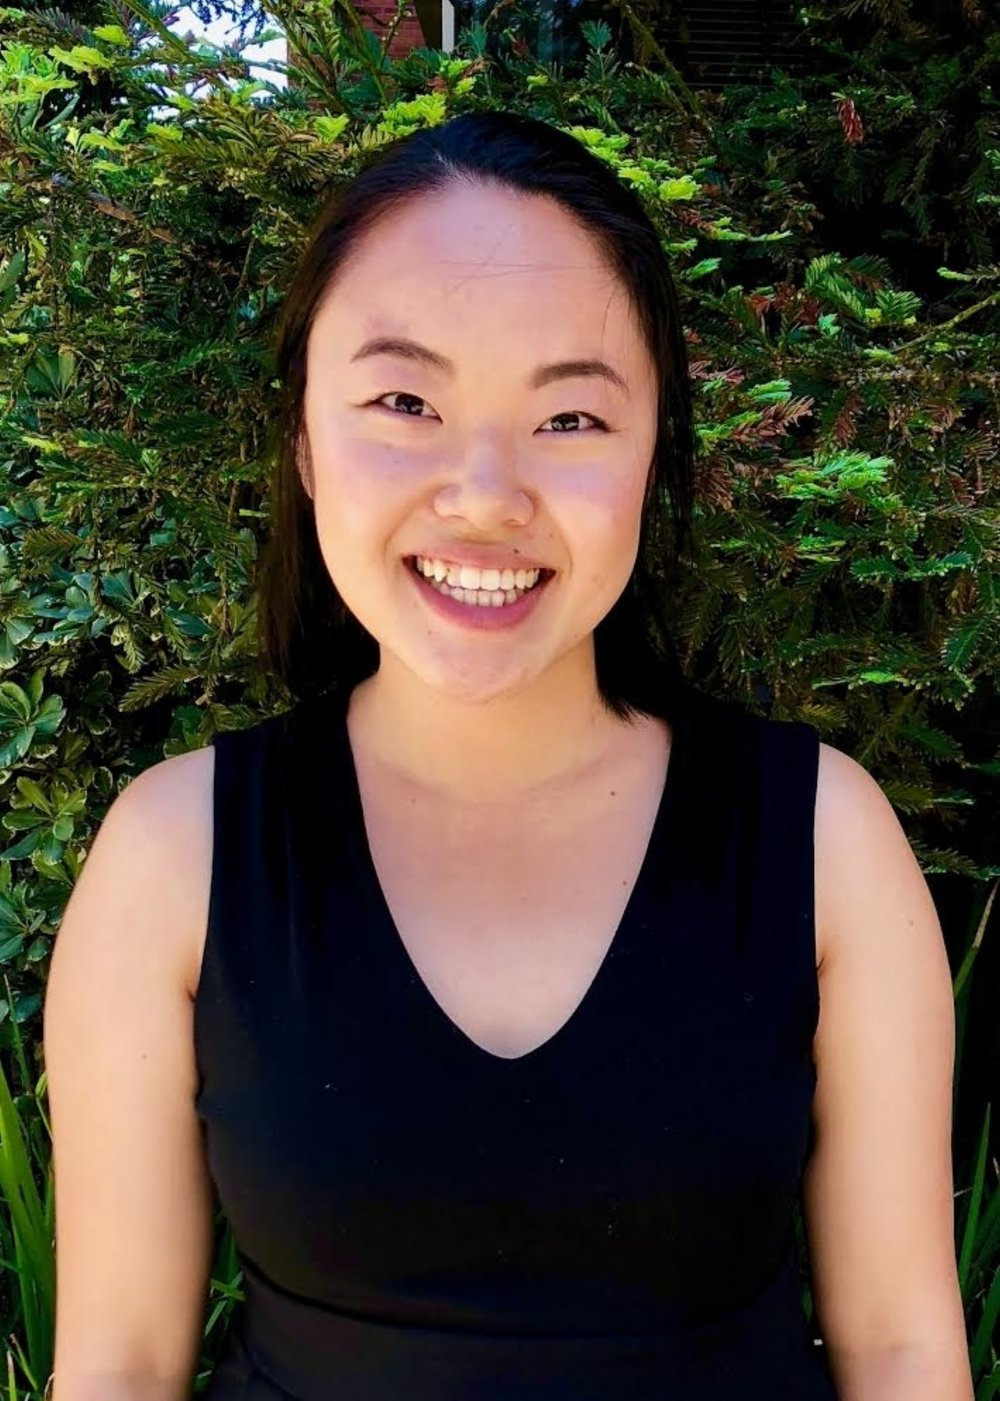 Alicia Kwan is studying Environmental Science at UCLA. She hopes to pursue a career in education or environmental policy.  Fun fact: She watches dog videos and Disney movies and knits in her free time.